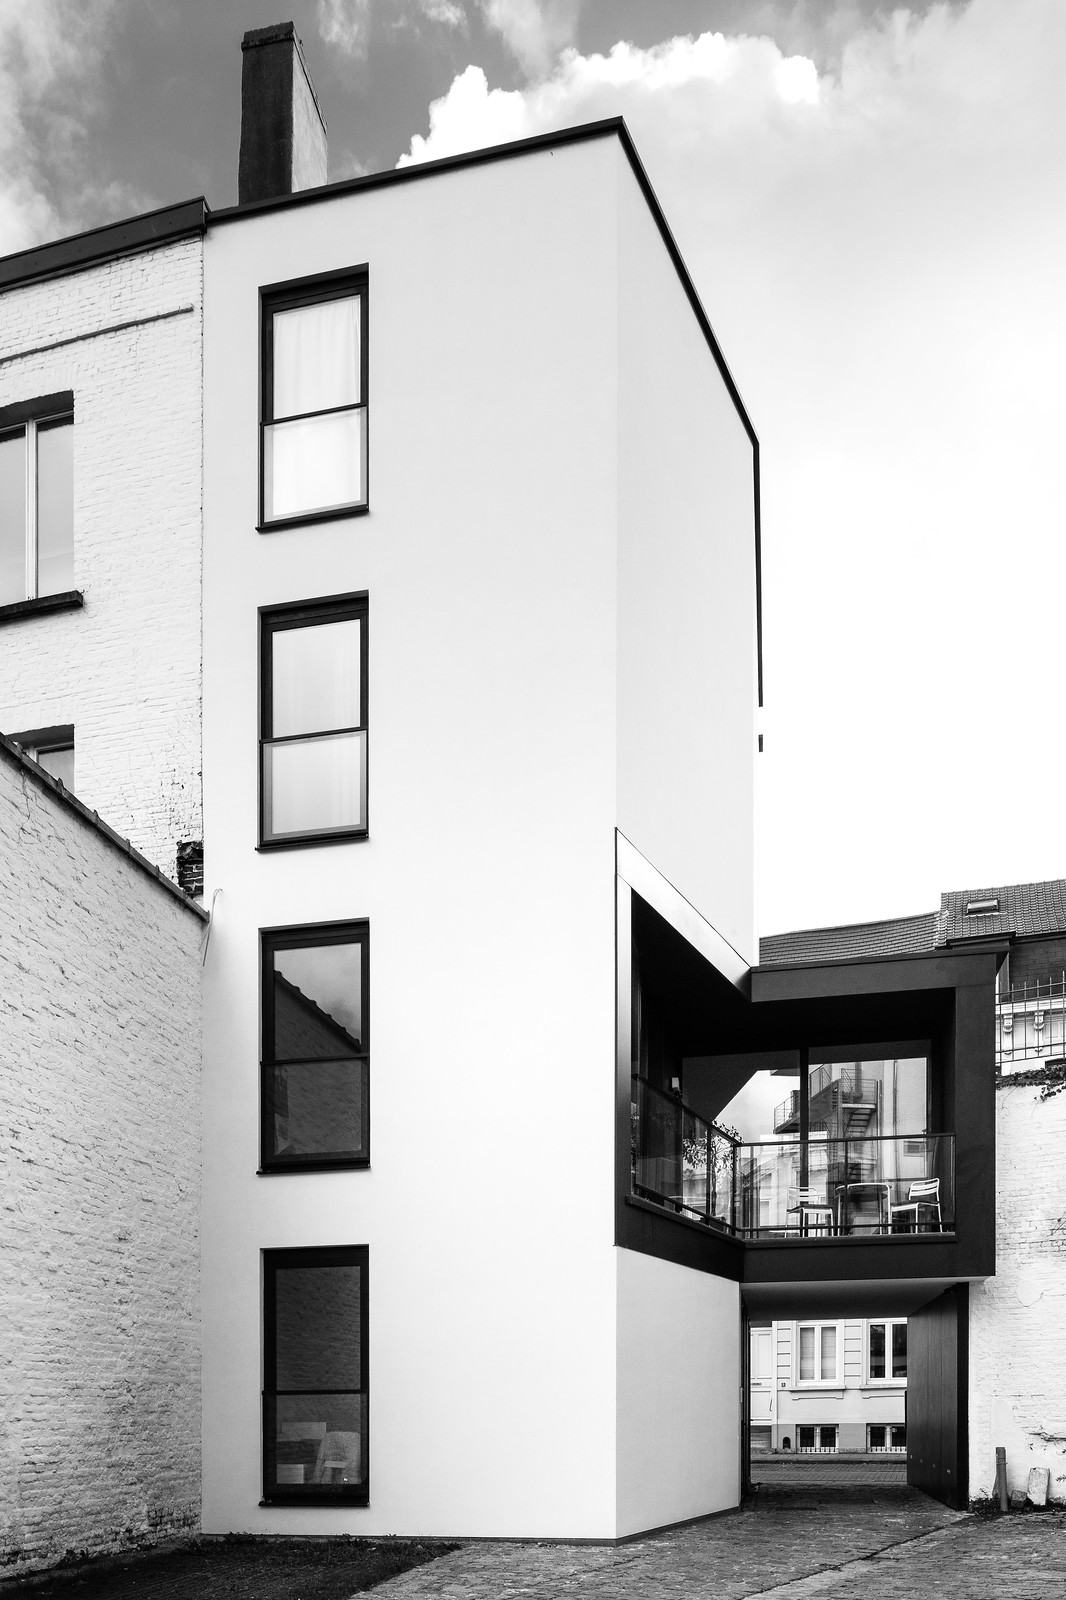 Architect: Wim Lahousse - www.orarchitecten.be